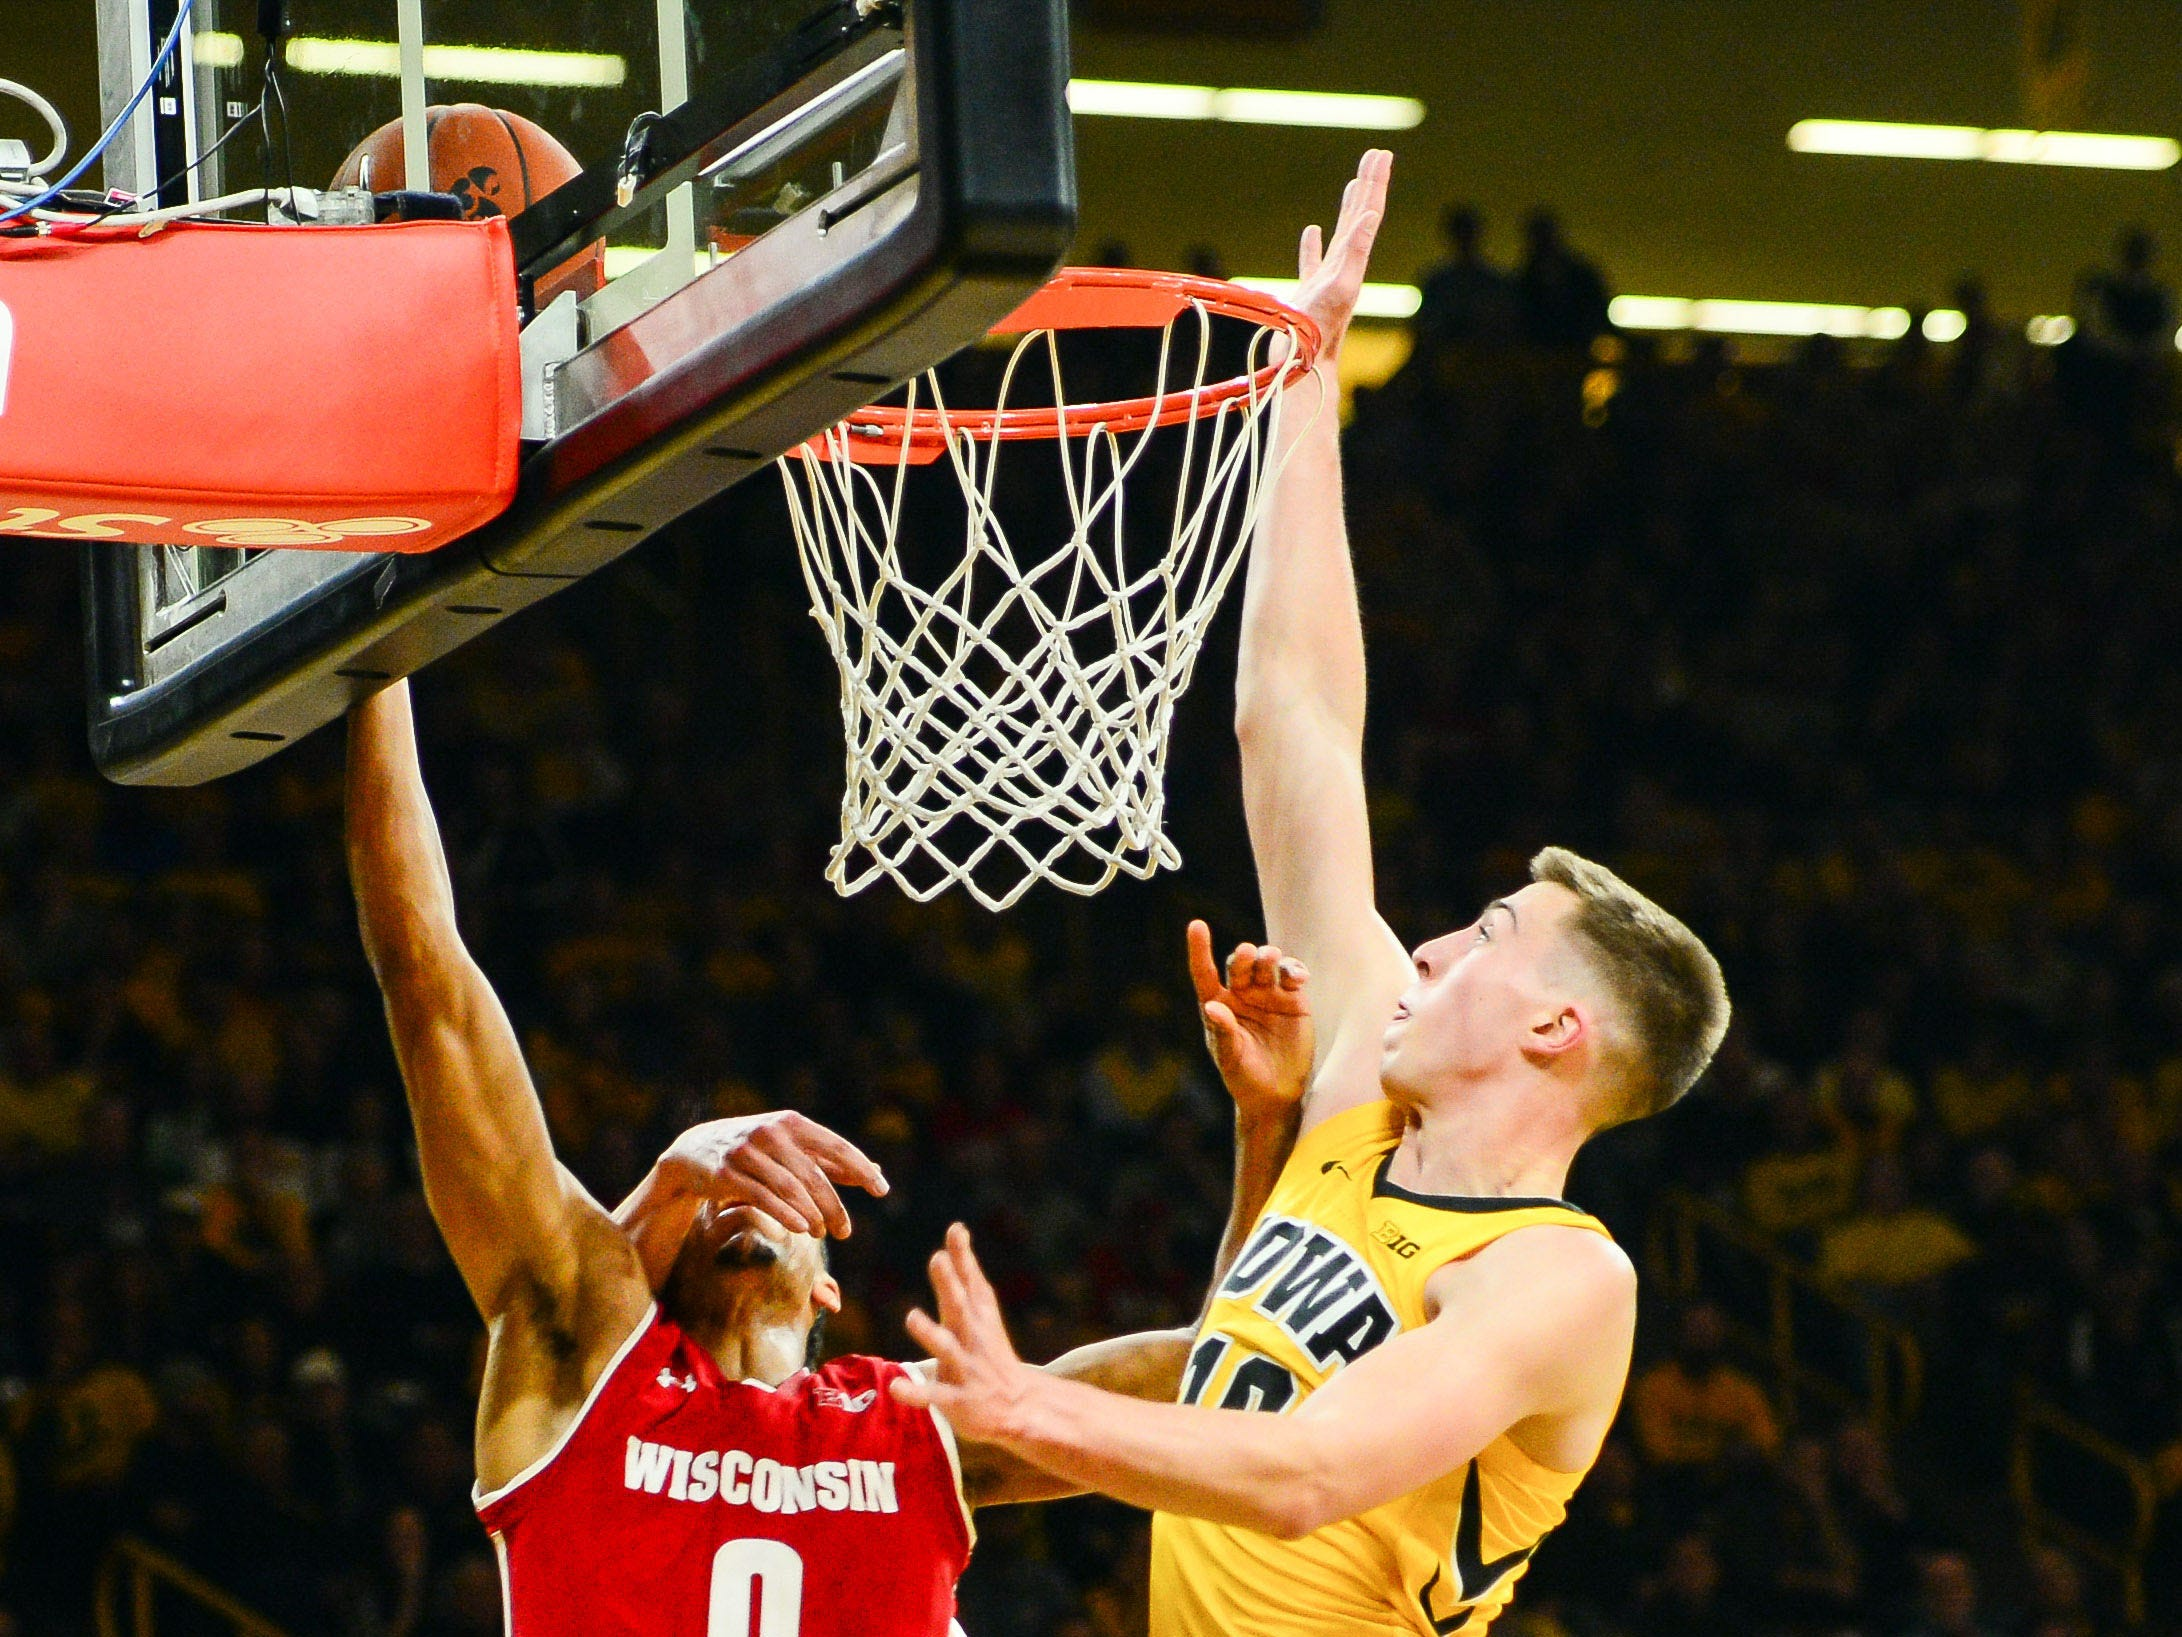 Badgers guard D'Mitrik Trice gets whacked on the side of the face by Iowa's Nicholas Baer as he goes up for a layup during the second half on Friday night at Carver-Hawkeye Arena in Iowa City.